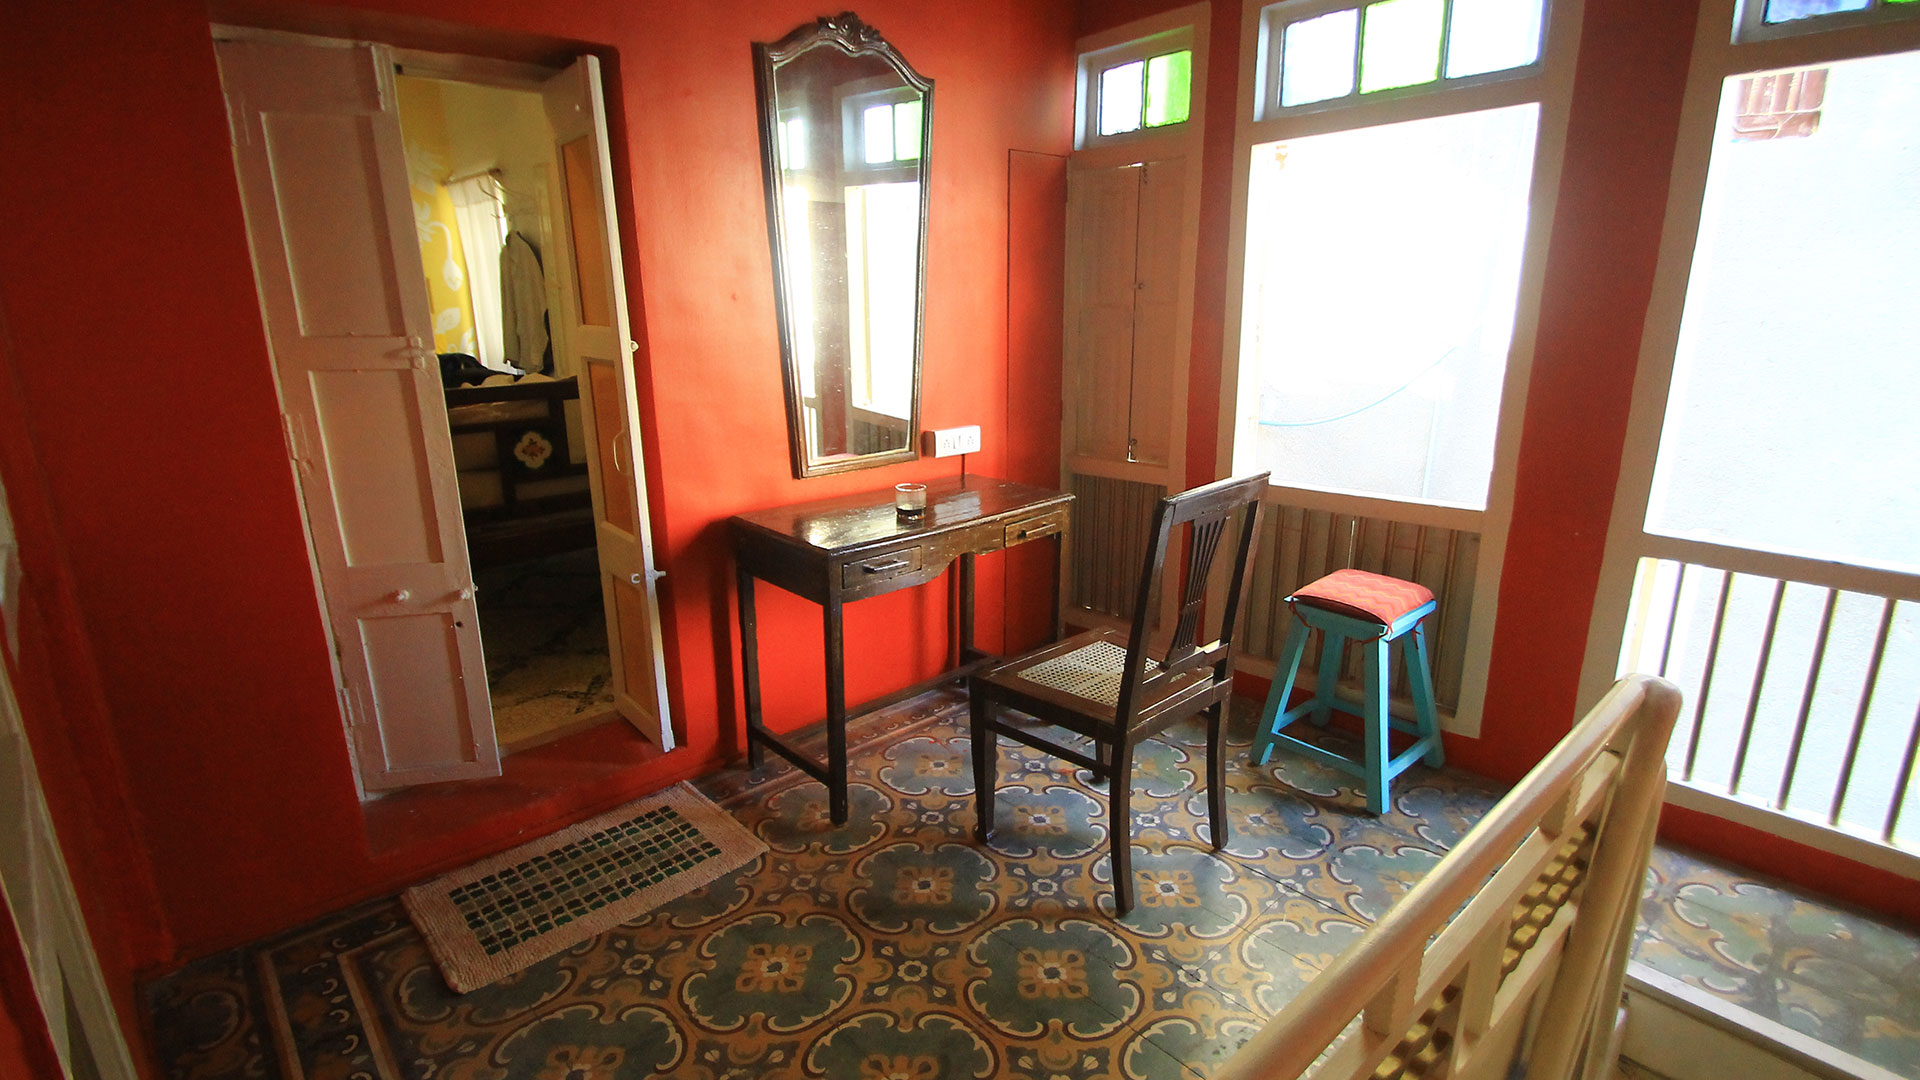 This concept of accommodation gives you the opportunity to experience the local community while you visit Ahmedabad. The mission behind the French Haveli is also to promote the local heritage by re-purposing Historical buildings.